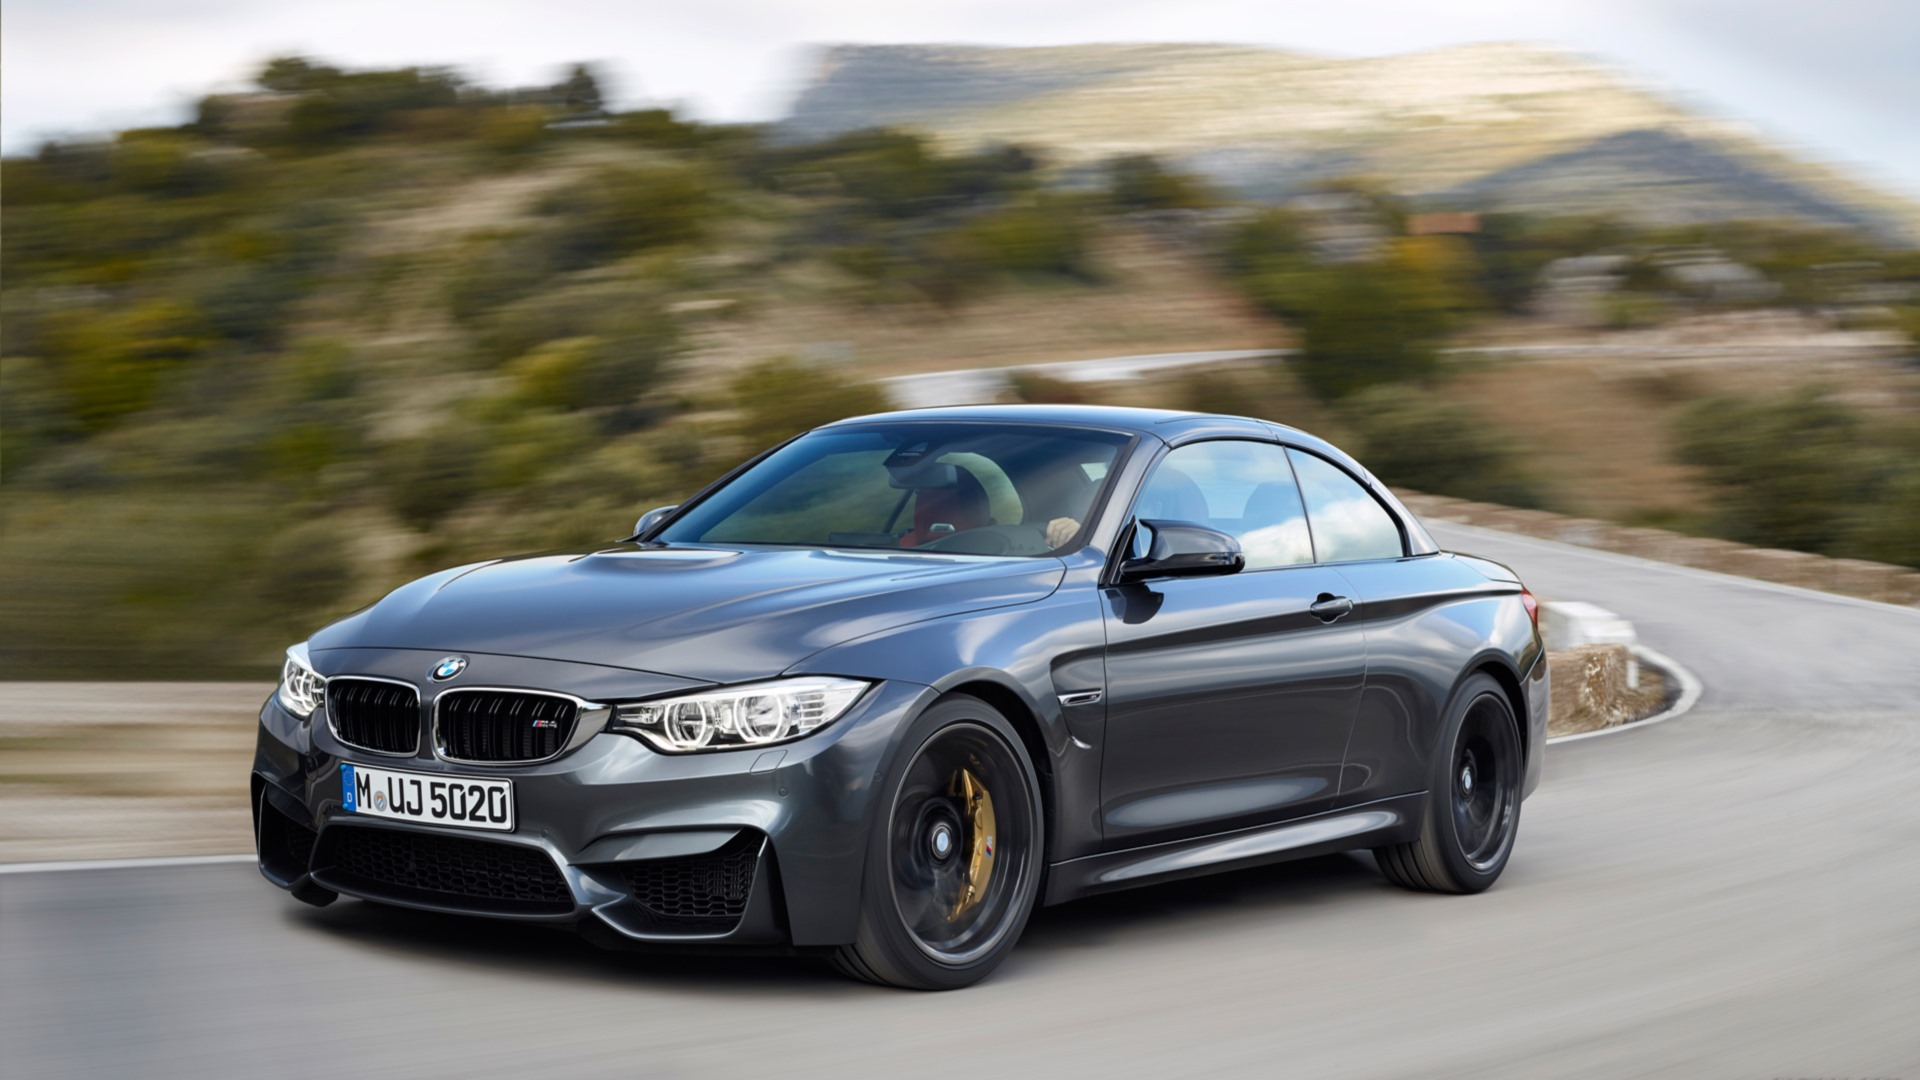 10 2015 Bmw M4 Cabrio Wallpapers Hd Wallpaper Abyss